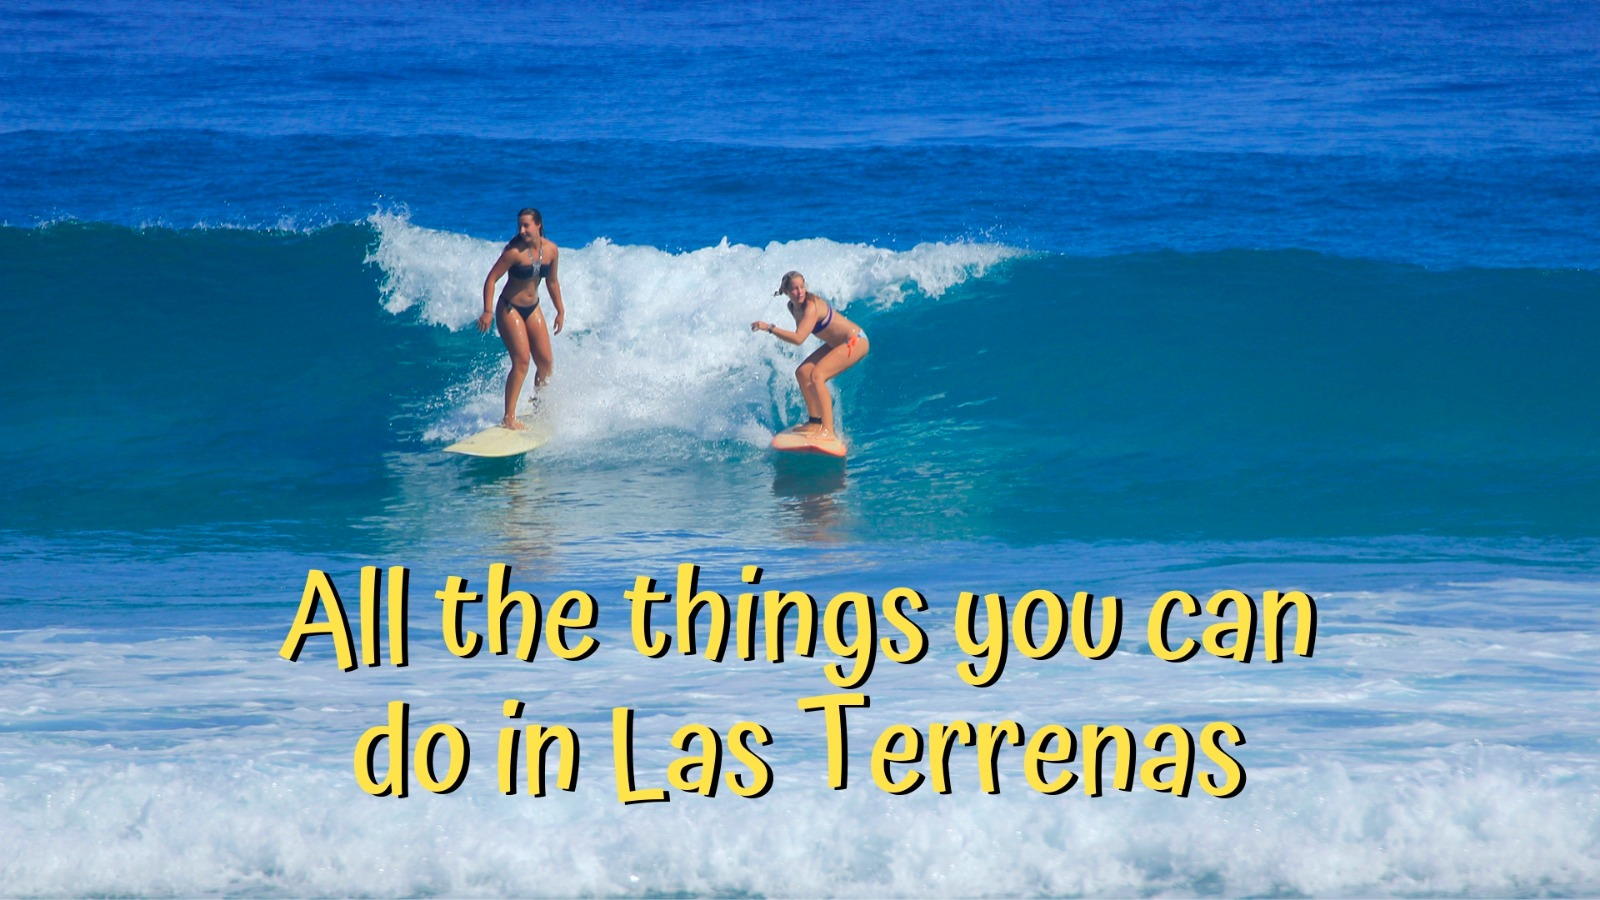 All the things you can do in Las Terrenas.jpeg